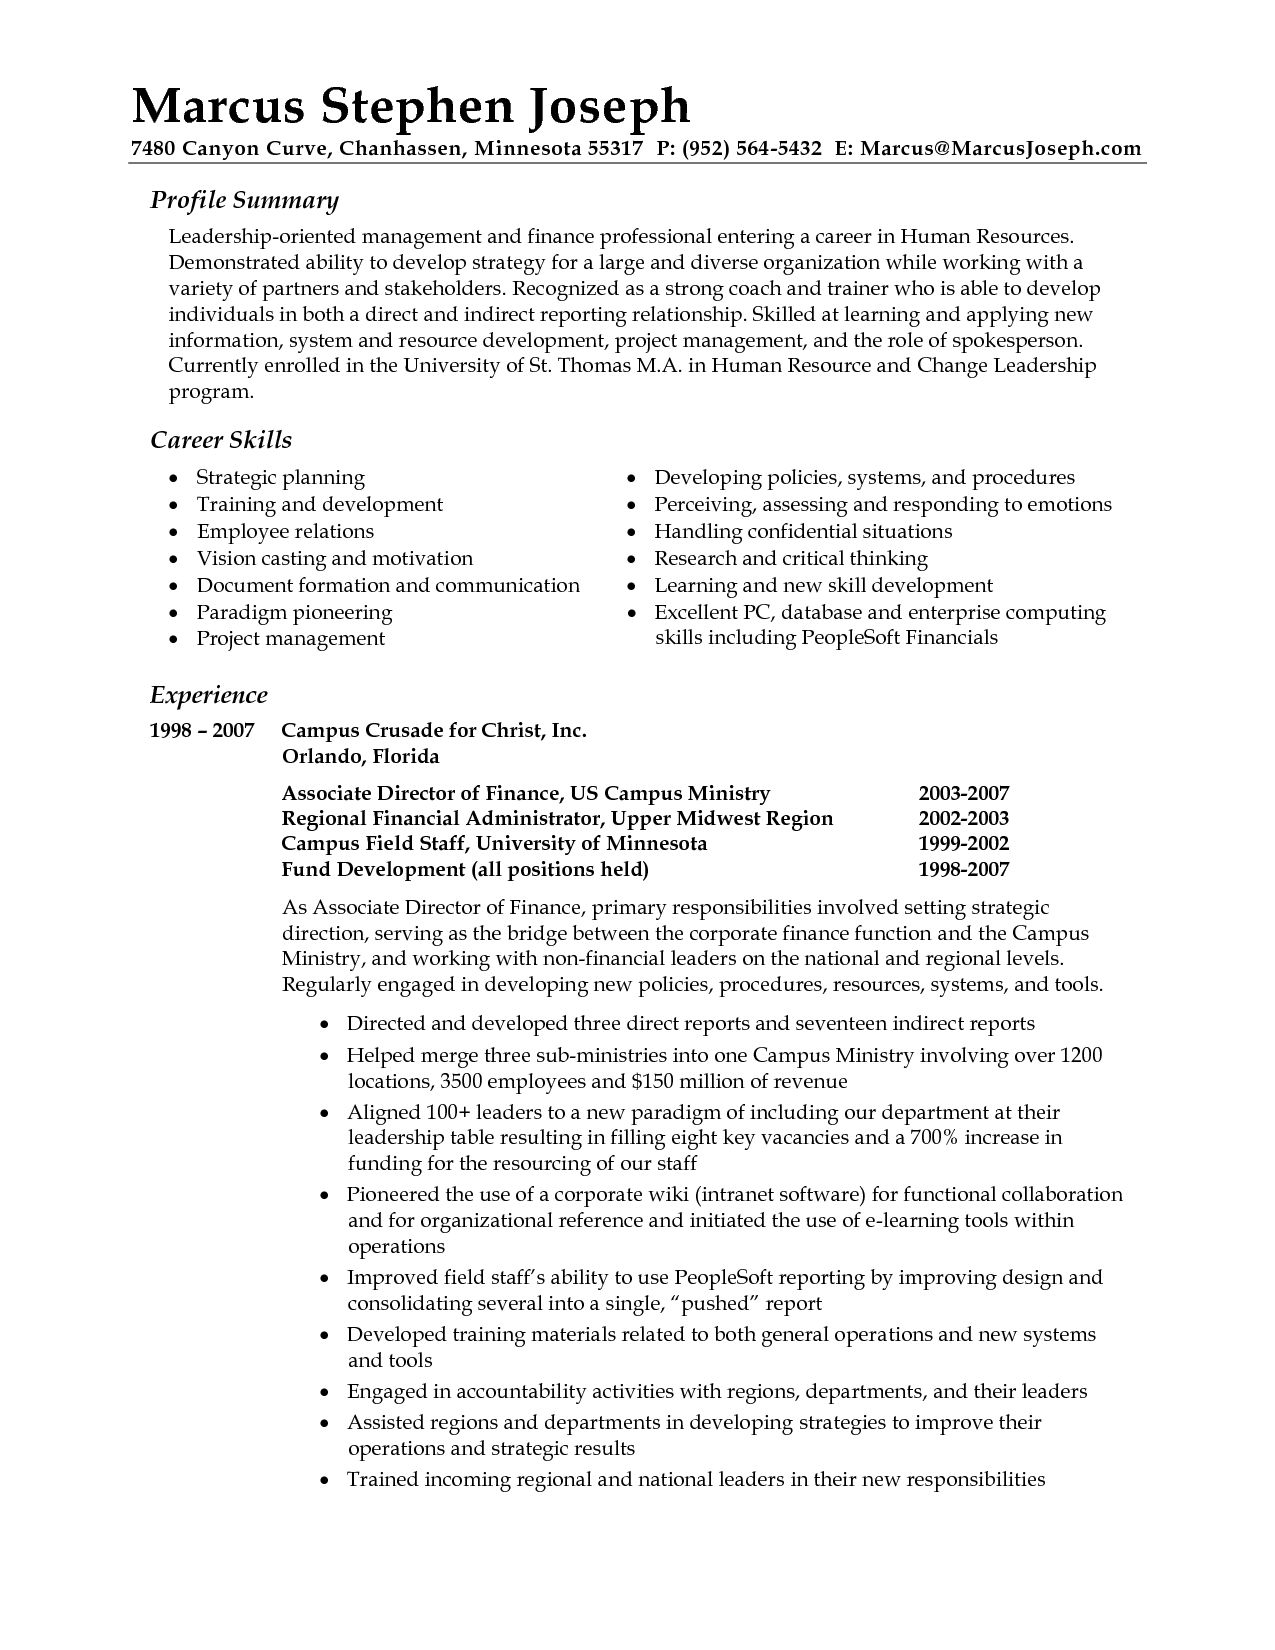 professional summary resume examples career statement profile free cover letter shipping Resume Professional Profile Resume Examples